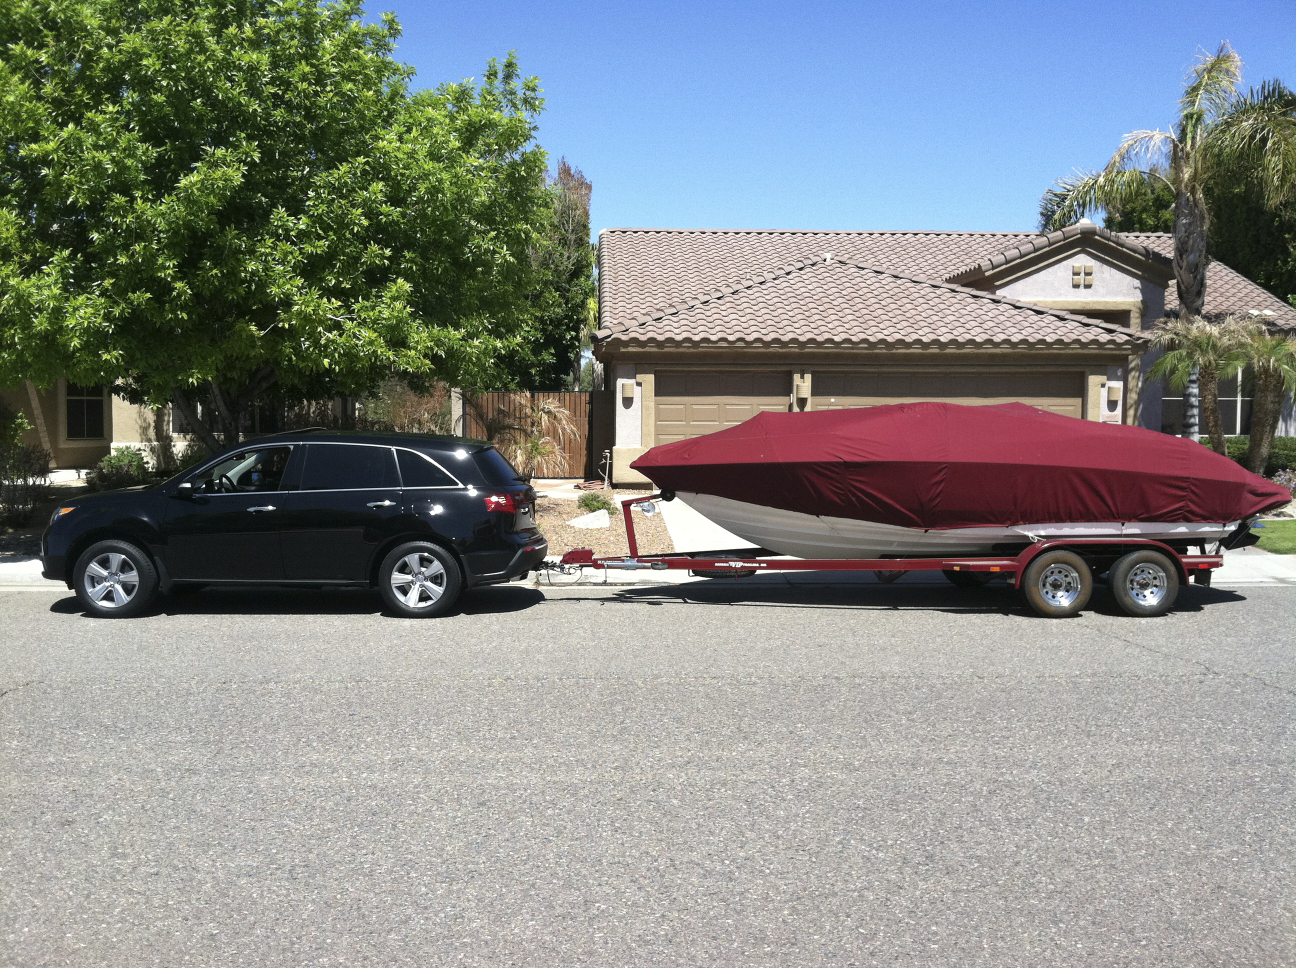 Towing With Your MDX Acura MDX Forum Acura MDX SUV Forums - Acura mdx tow capacity